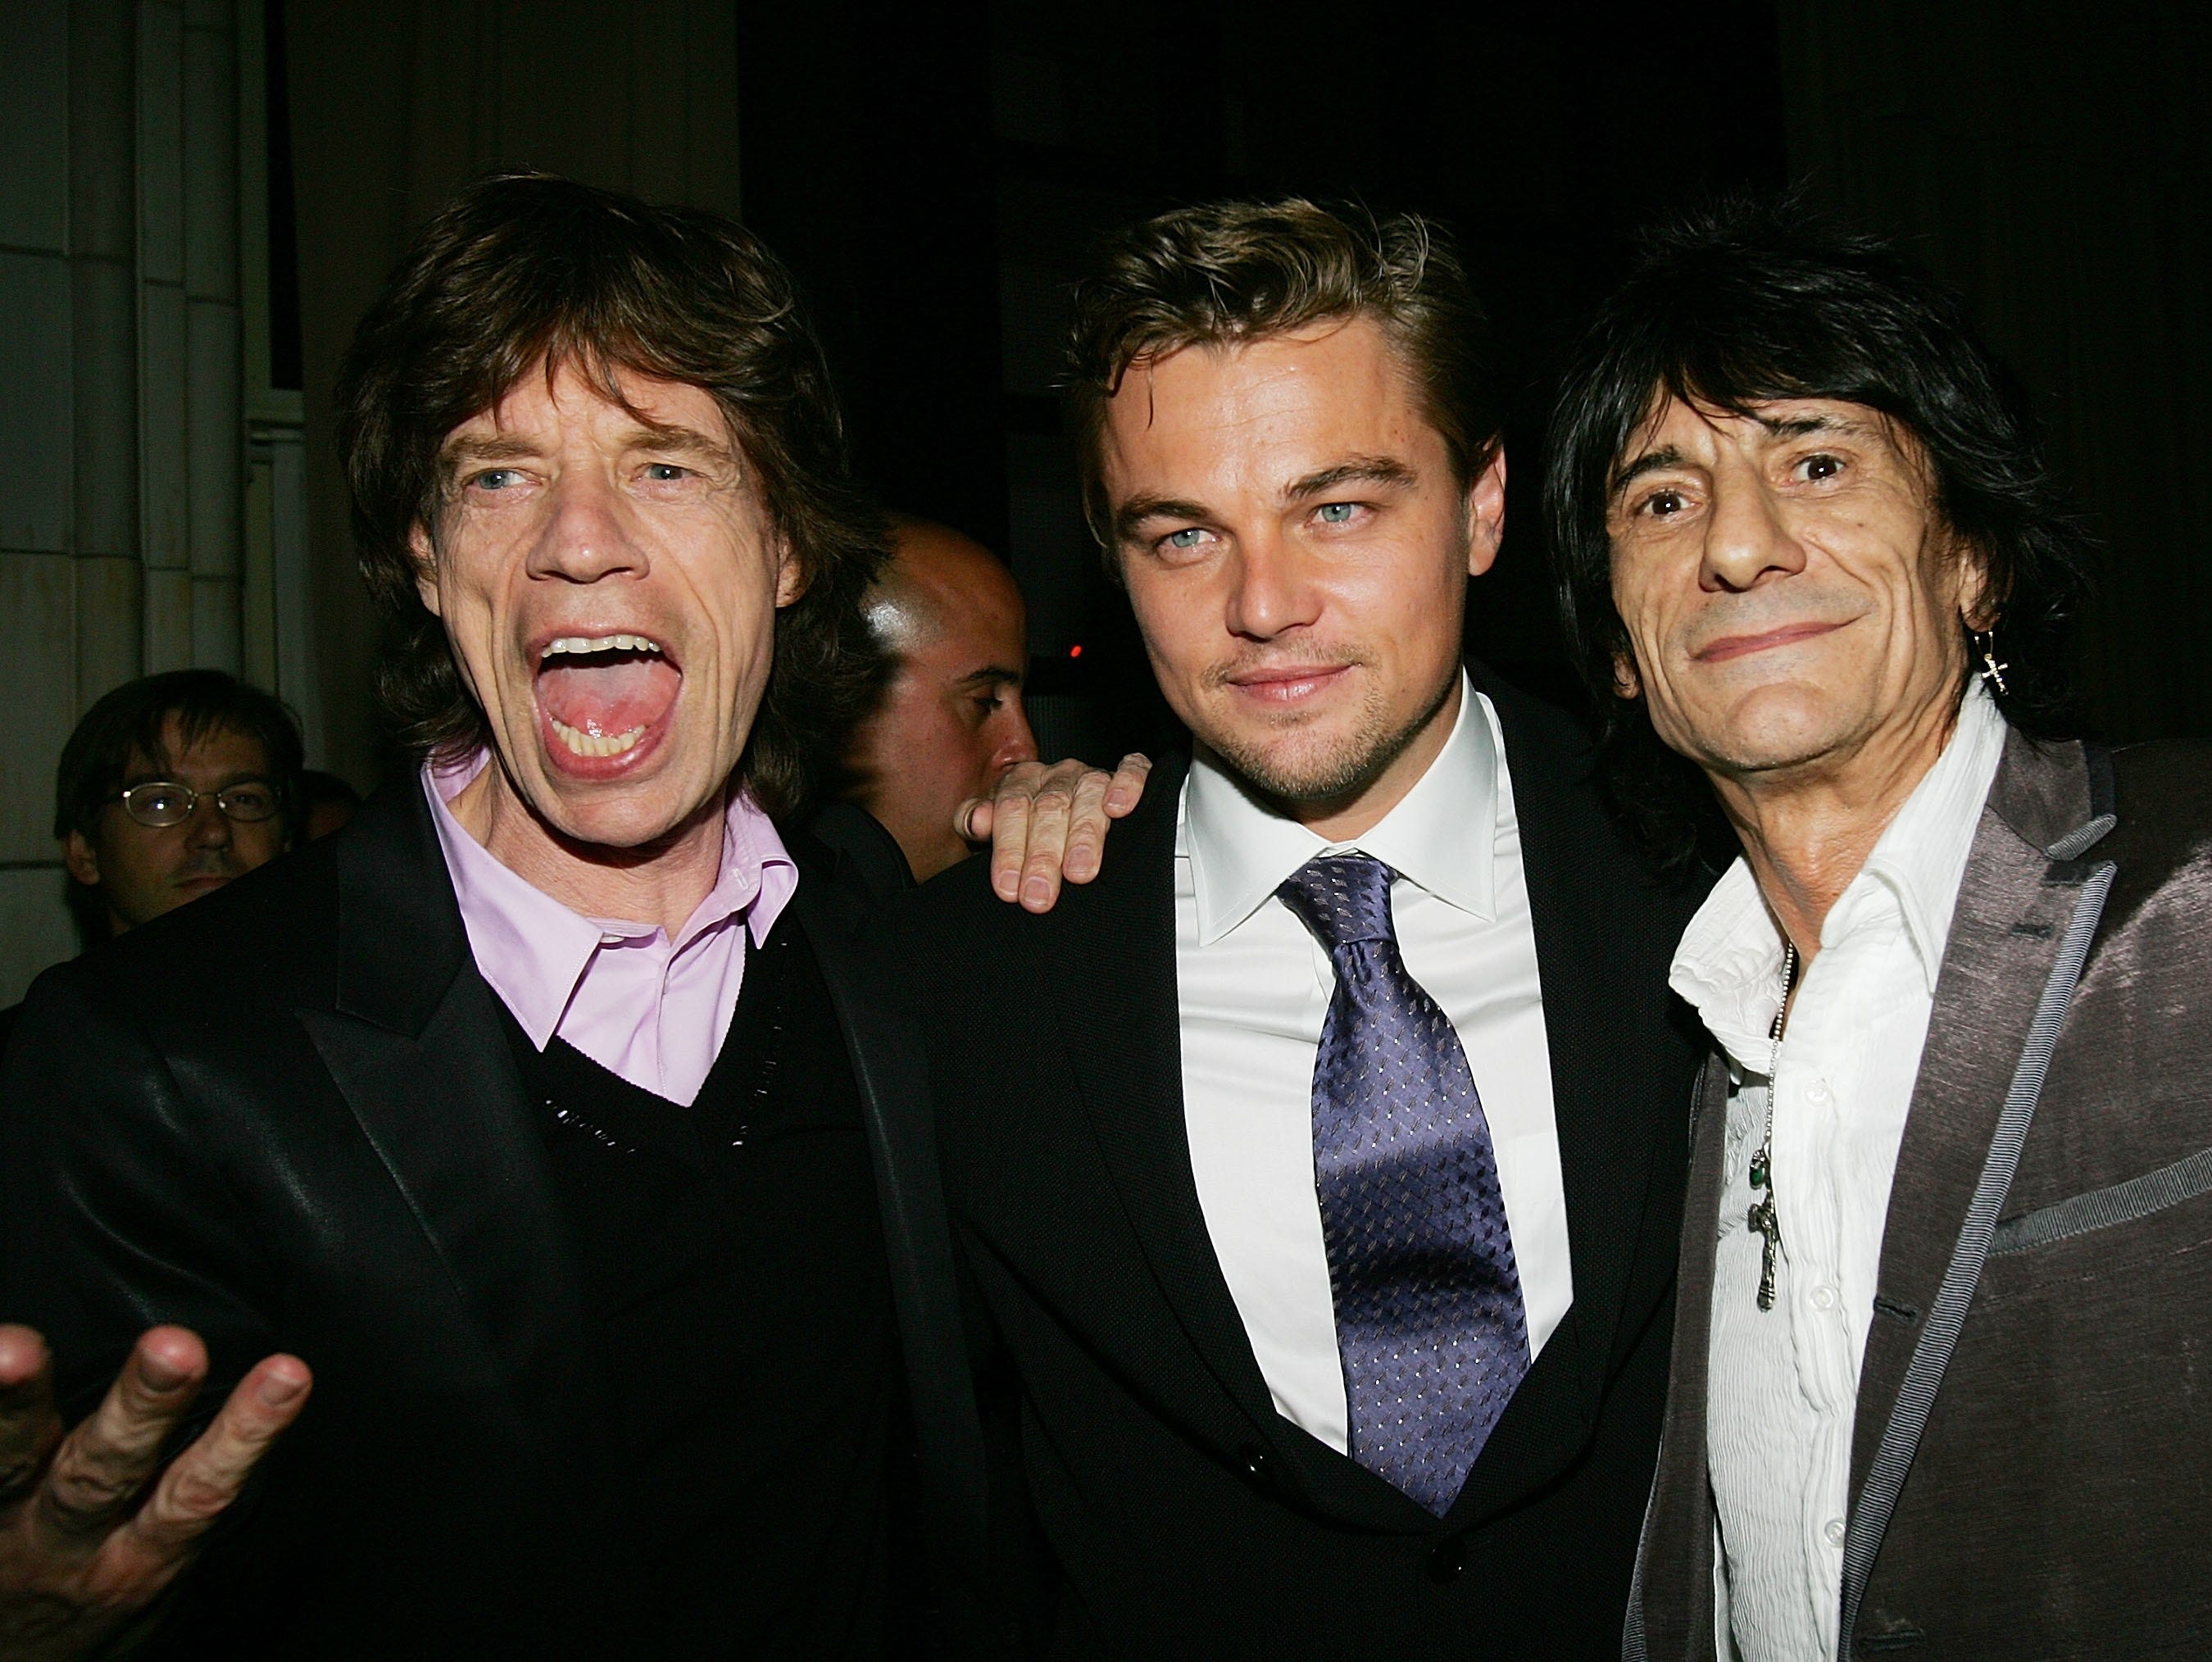 "NEW YORK - SEPTEMBER 26:  Rockers Mick Jagger (L) and Ronnie Wood (R) chat with actor Leonardo DiCaprio (C) at the ""The Departed"" film premiere after party at Guastivino's September 26, 2006 in New York City.  (Photo by Evan Agostini/Getty Images) *** Local Caption *** Mick Jagger;Leonardo DiCaprio;Ronnie Wood ORG XMIT: 71973364 GTY ID: 73364EA004_Warner_Bros_P"